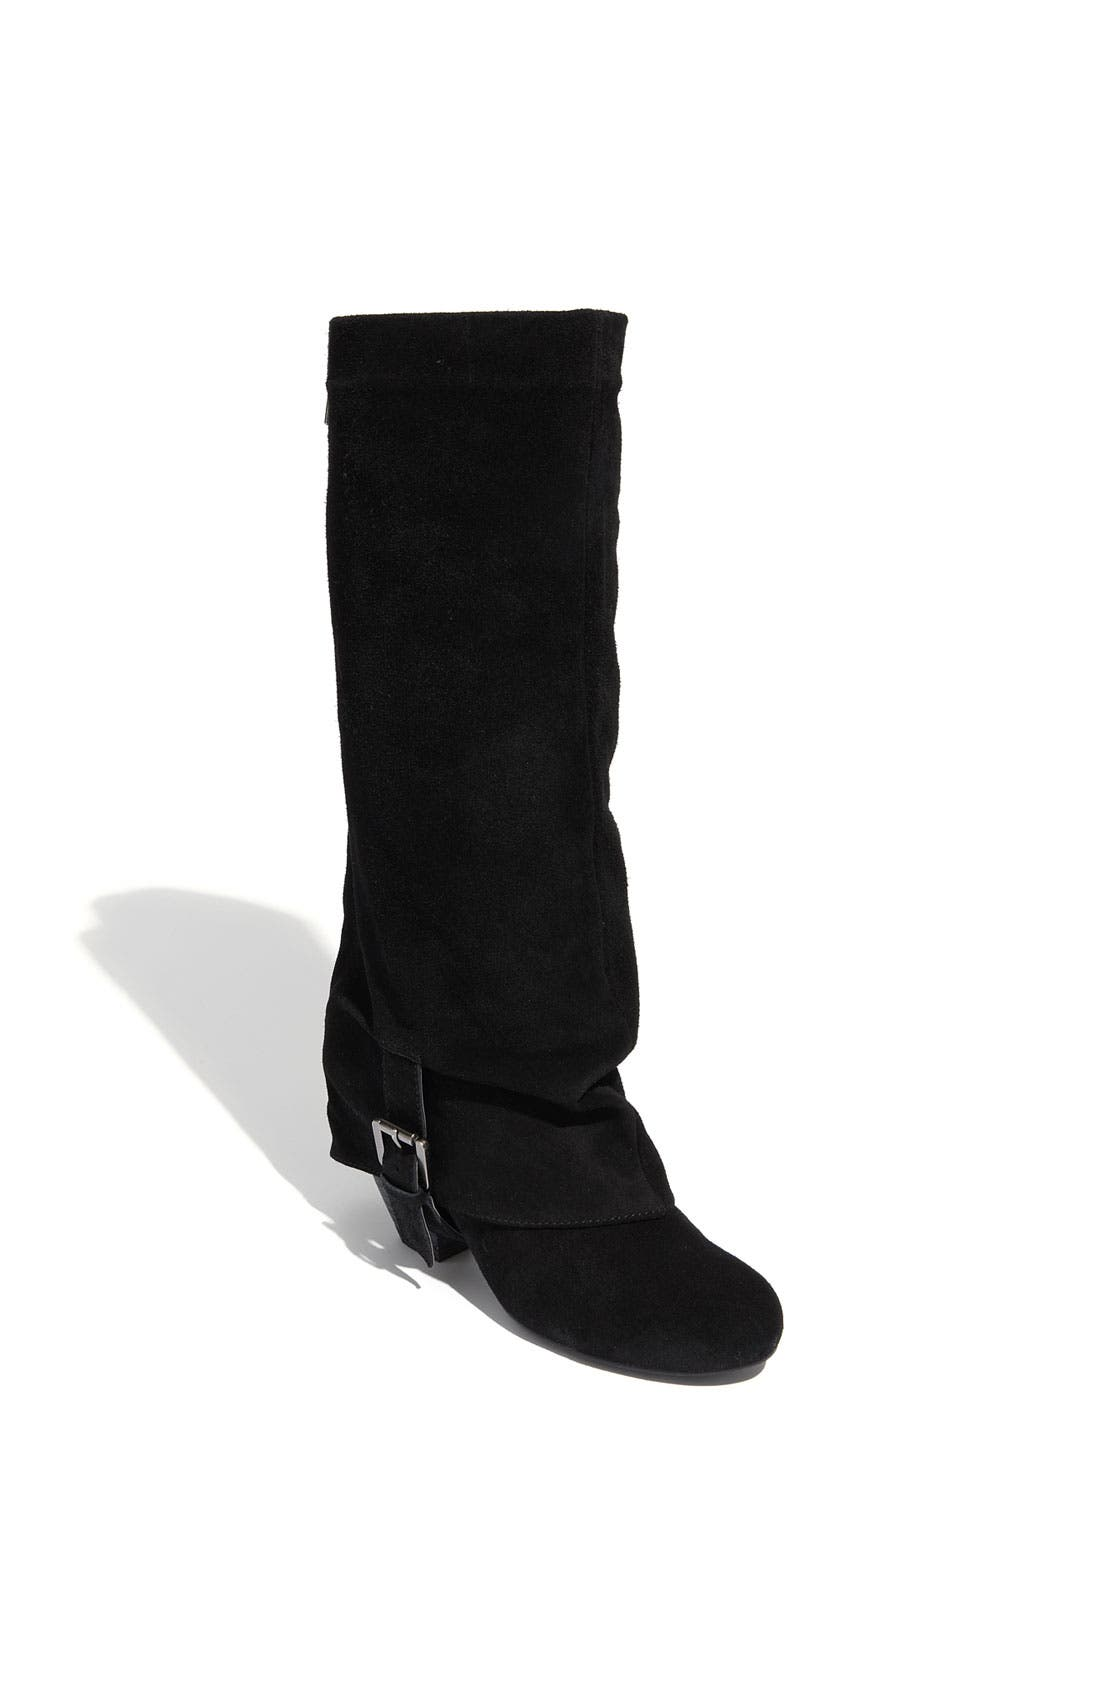 'Jump Start' Boot,                             Main thumbnail 1, color,                             Black Suede